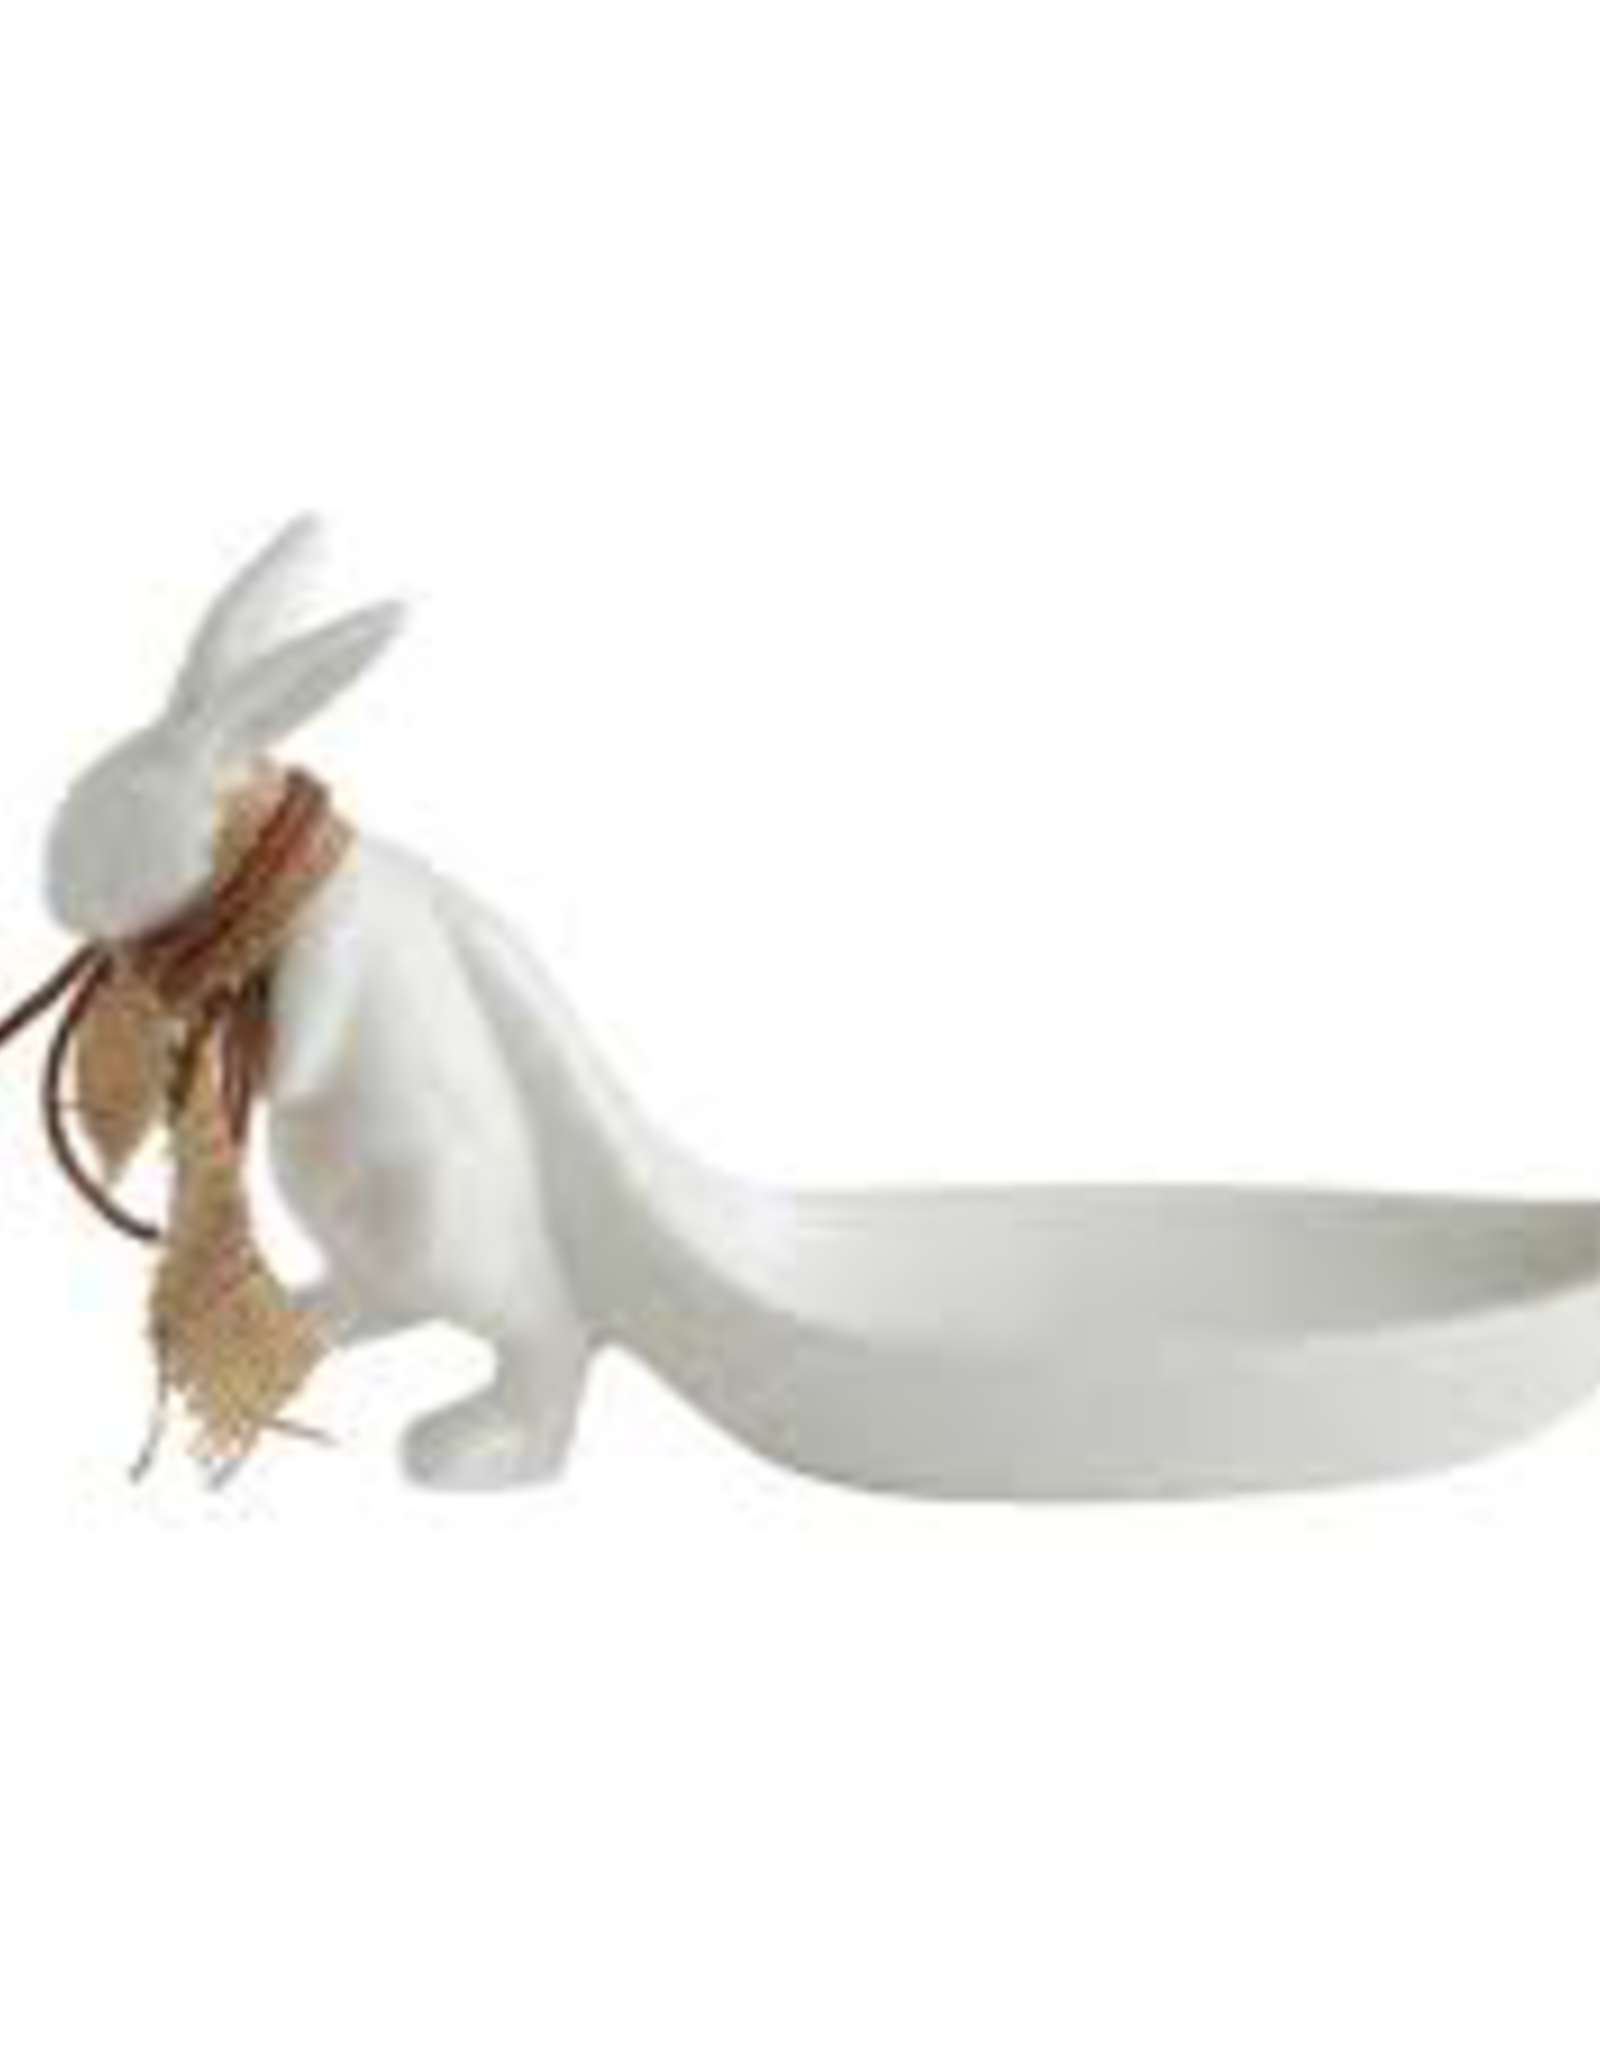 JEWELRY HOLDER-RABBIT PULLING LEAF BOWL, STONEWARE